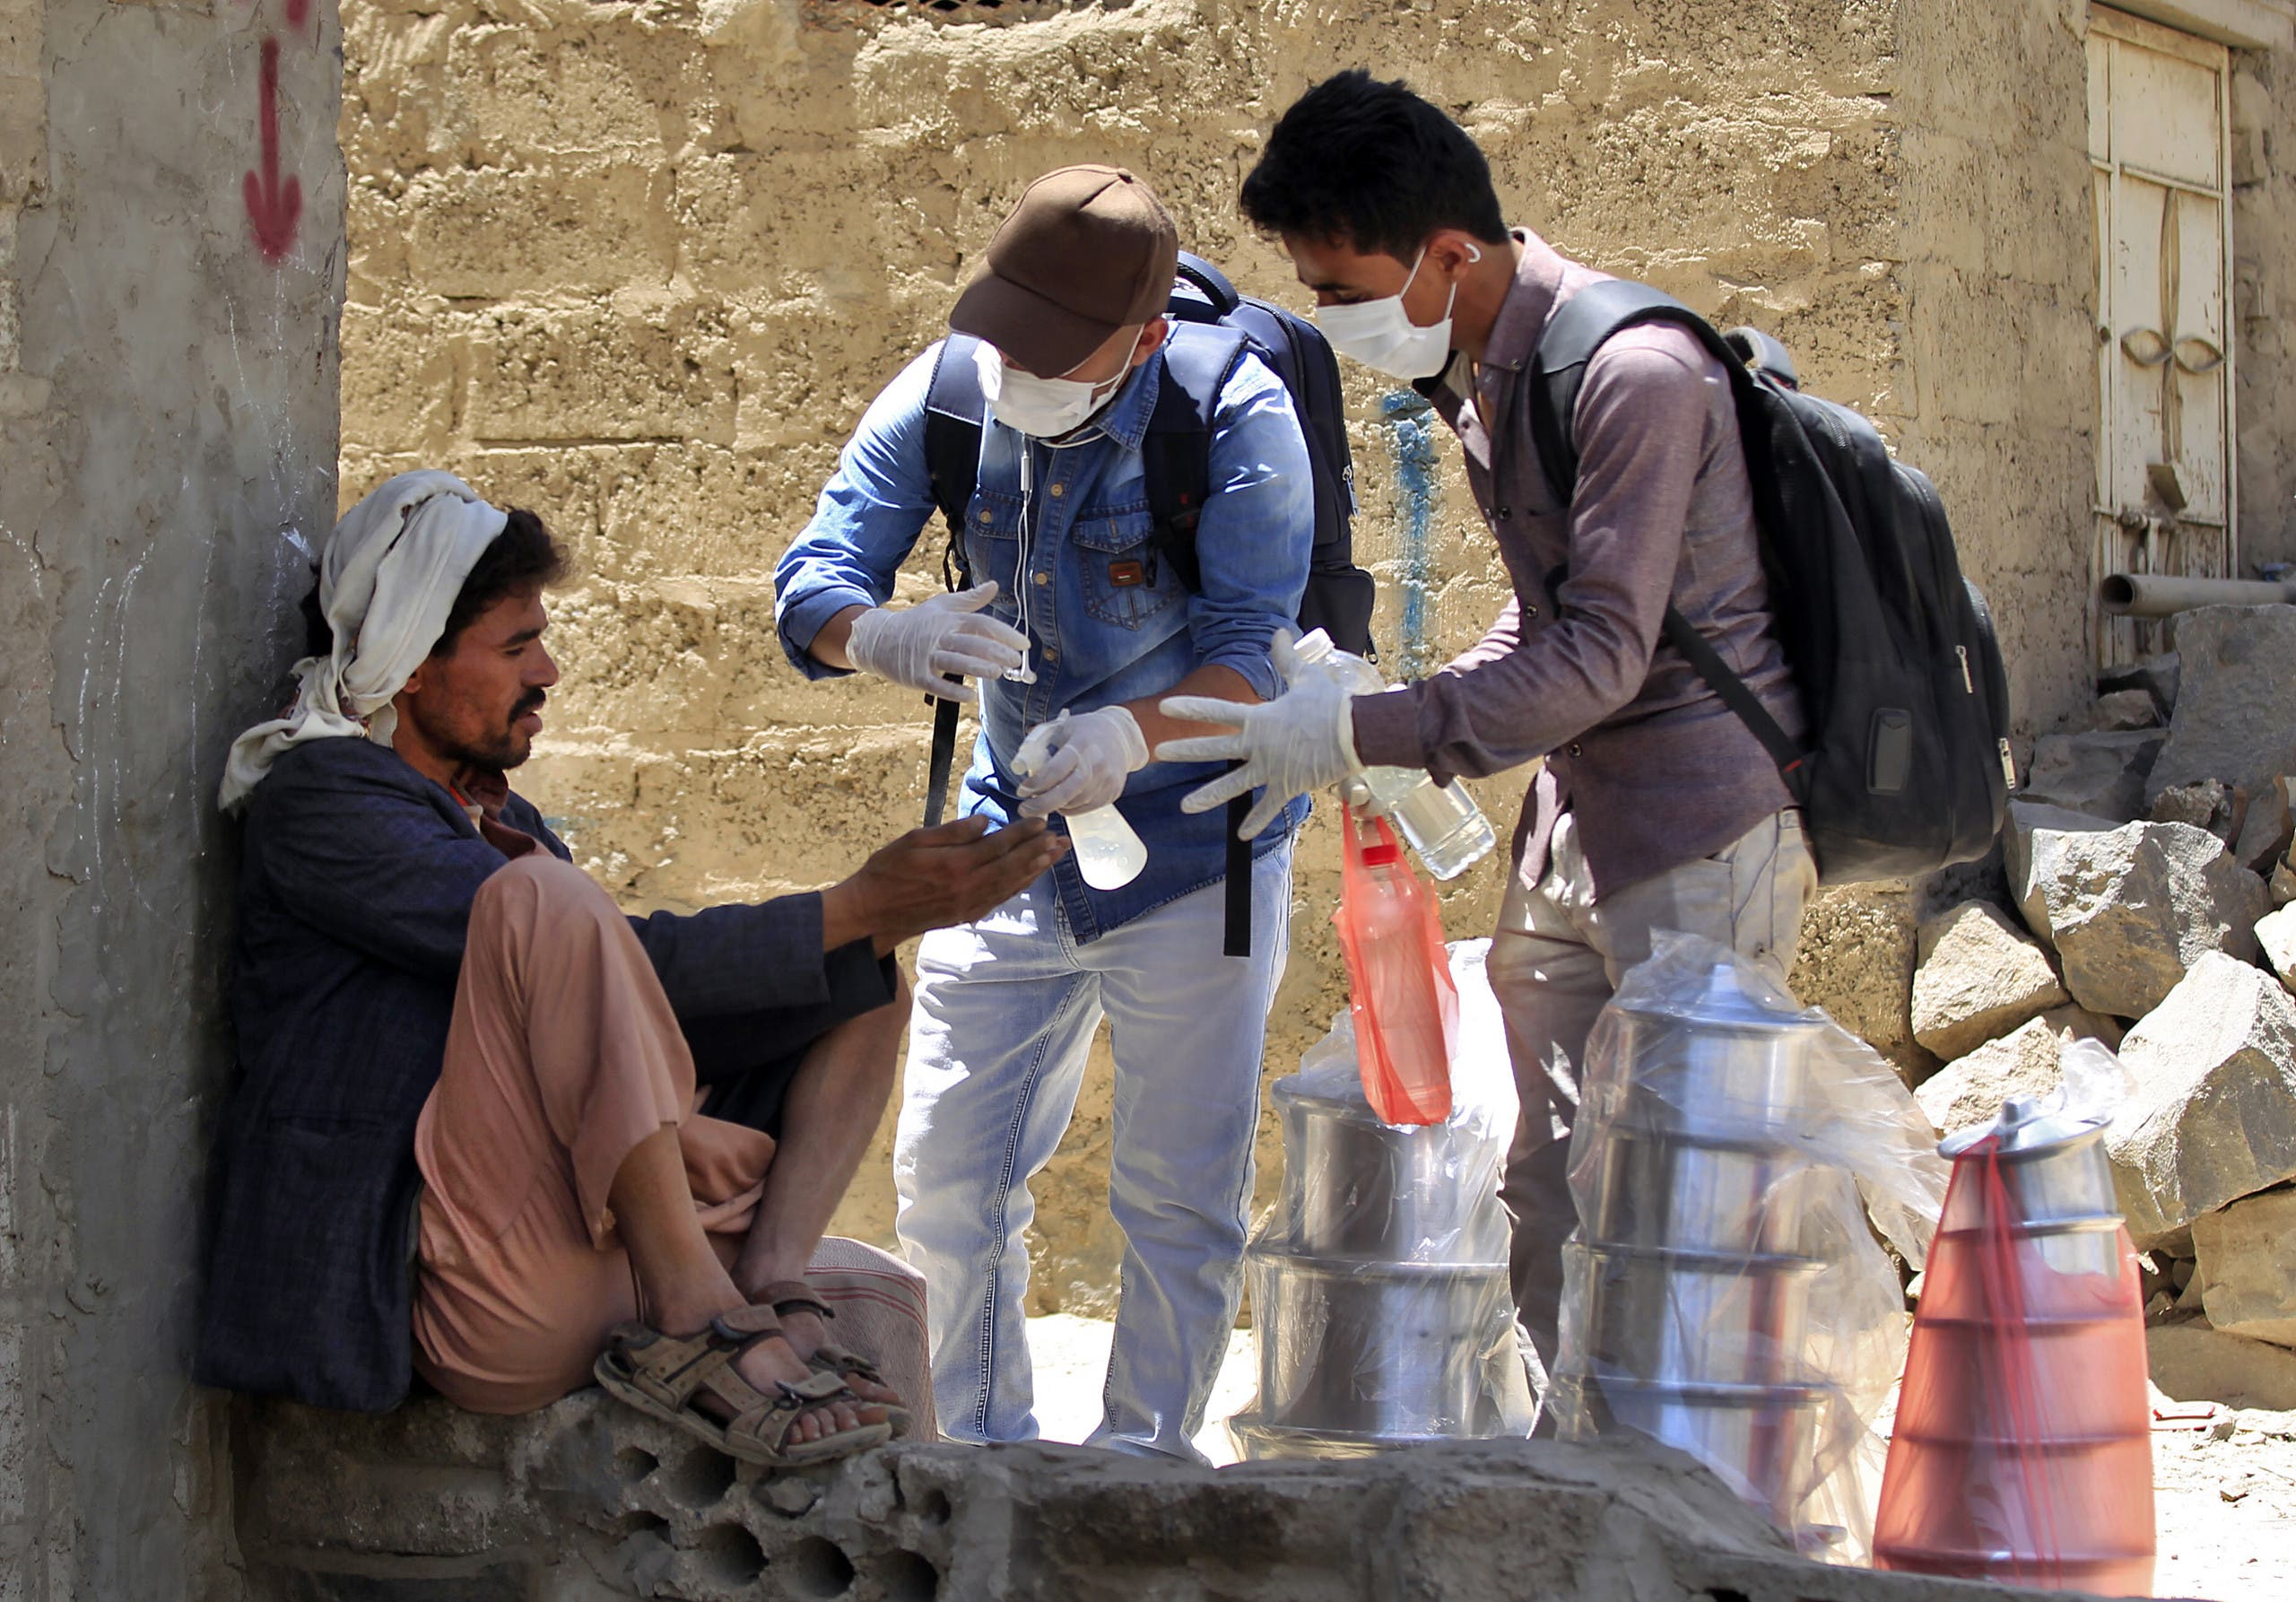 Yemeni volunteers spray disinfectant on the hands of a man in one of Sanaa's impoverished neighborhoods, on March 30, 2020. (AFP)